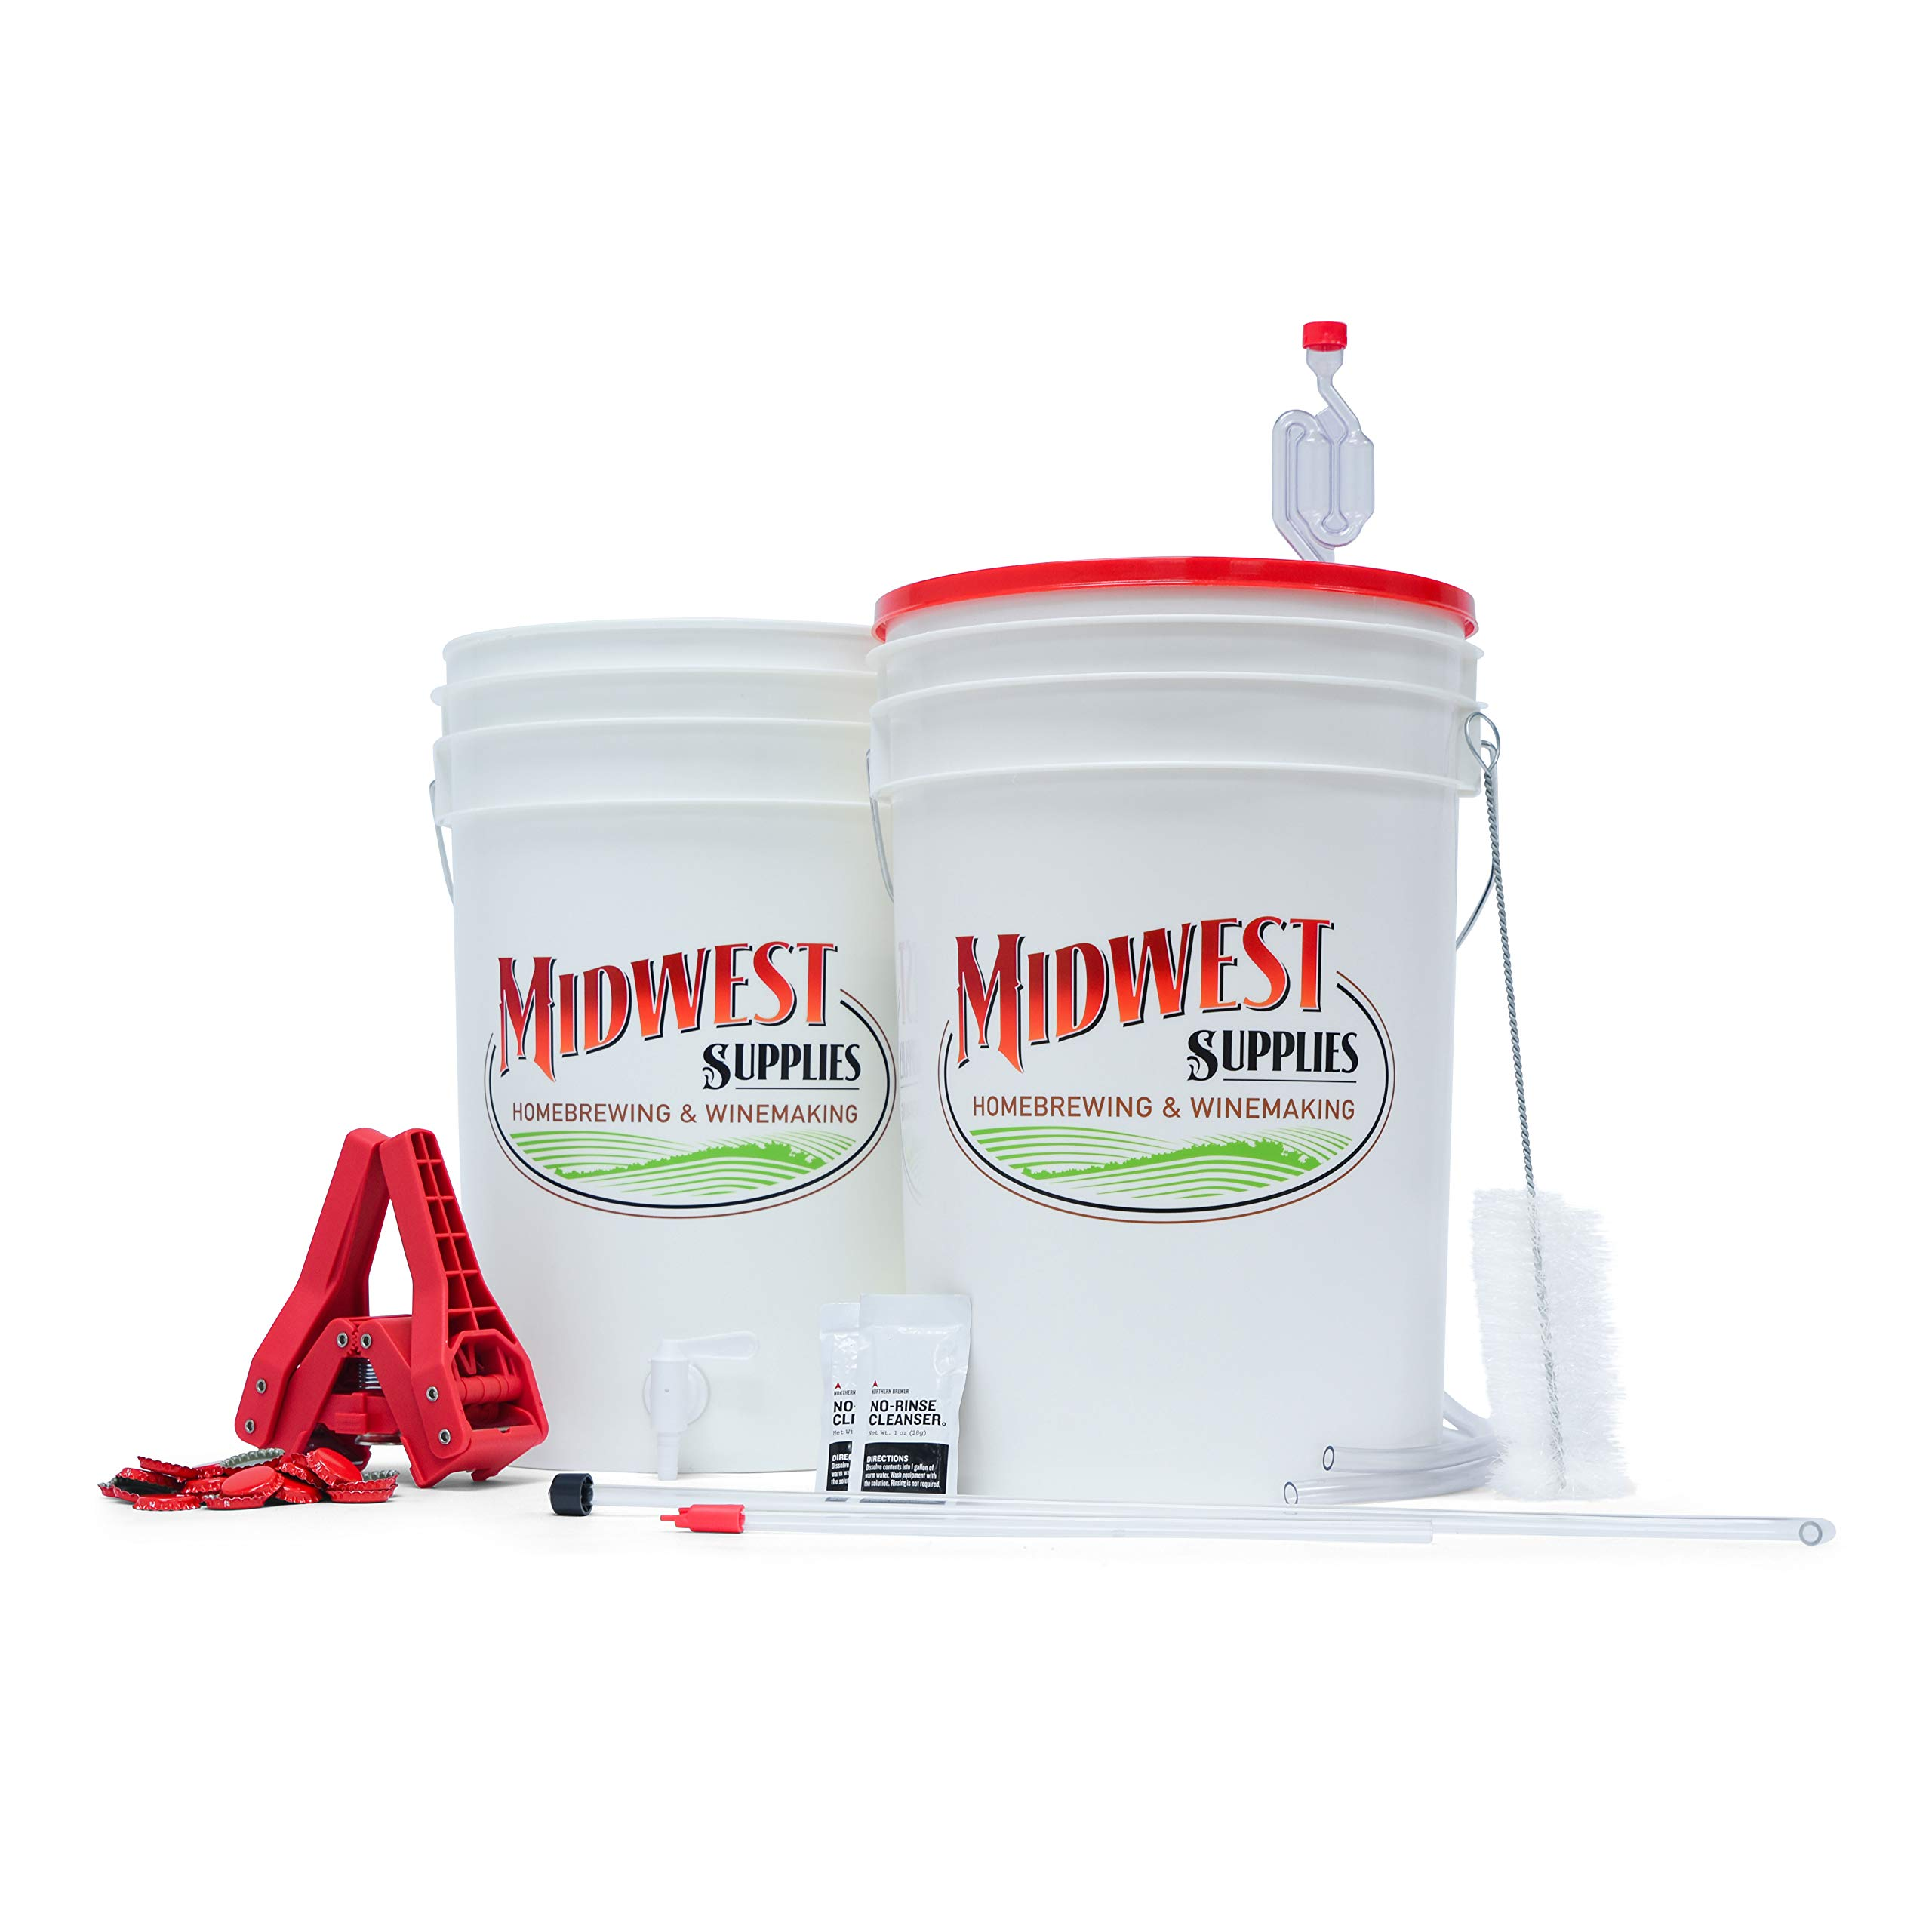 Midwest Supplies - Beer. Simply Beer. Starter Kit - Equipment for 5 Gallon Batches by Midwest Supplies